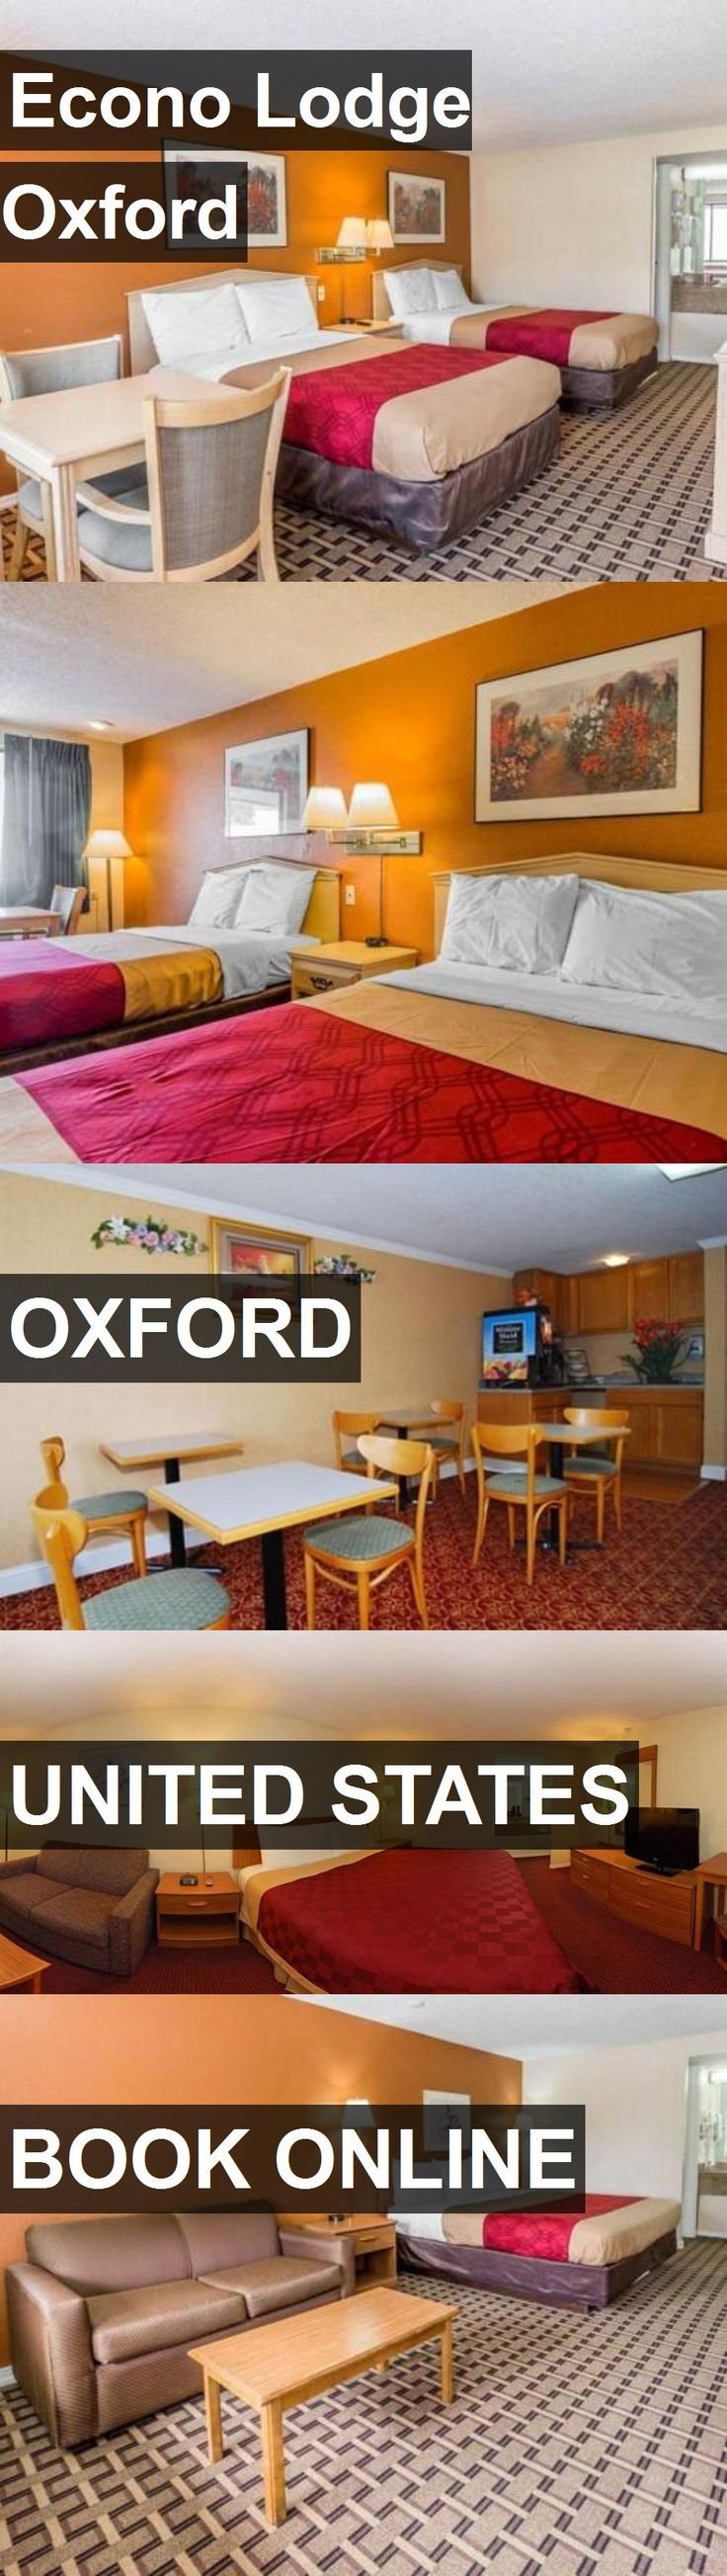 Hotel Econo Lodge Oxford in Oxford, United States. For more information, photos, reviews and best prices please follow the link. #UnitedStates #Oxford #travel #vacation #hotel